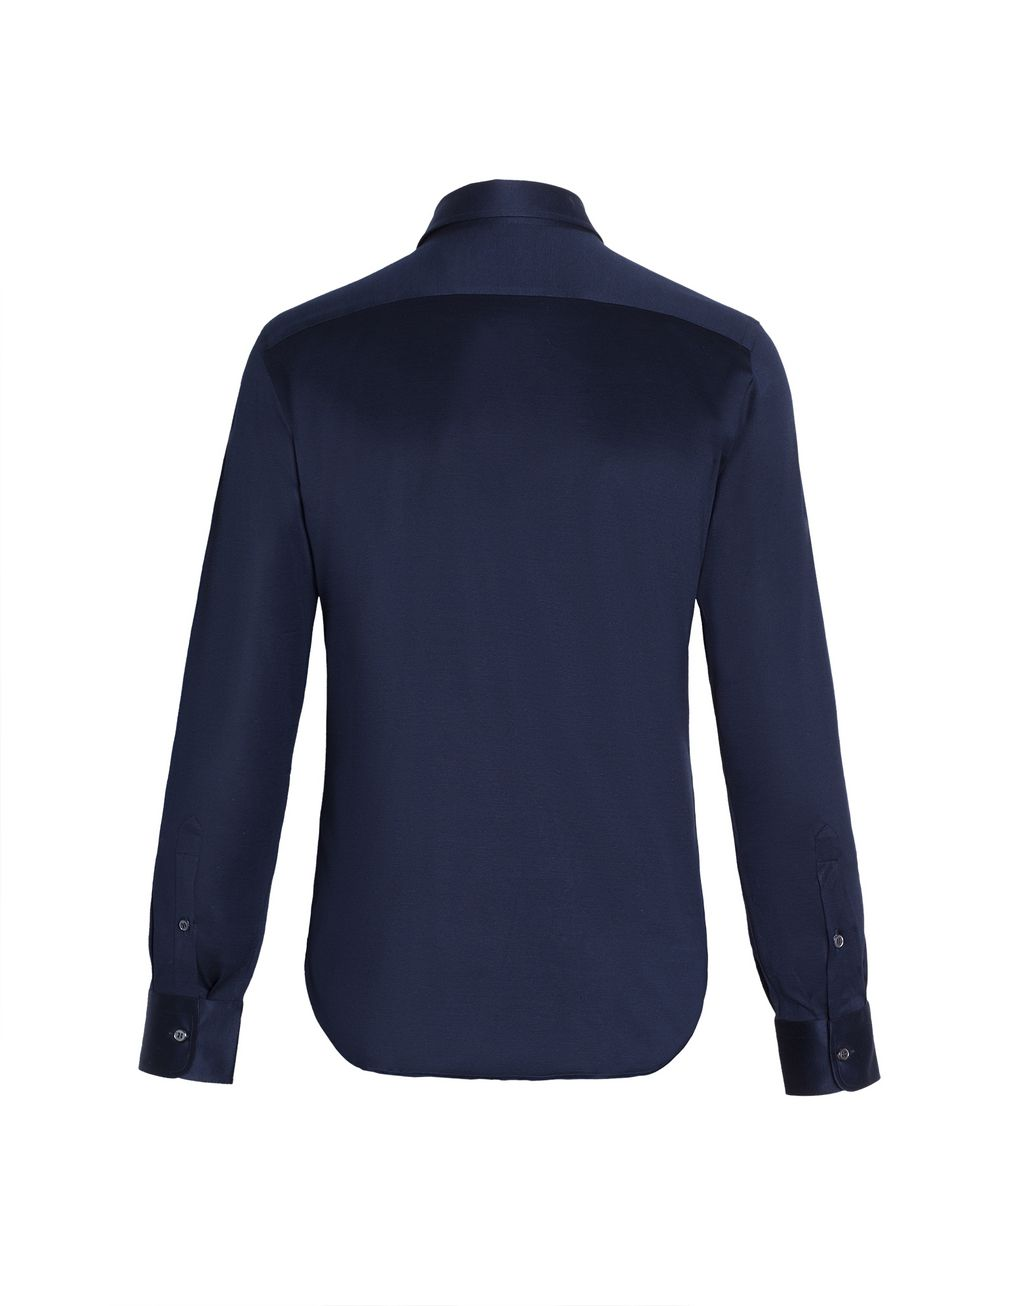 BRIONI Navy Blue Long Sleeved Logoed Jersey Shirt Leisure shirt [*** pickupInStoreShippingNotGuaranteed_info ***] d